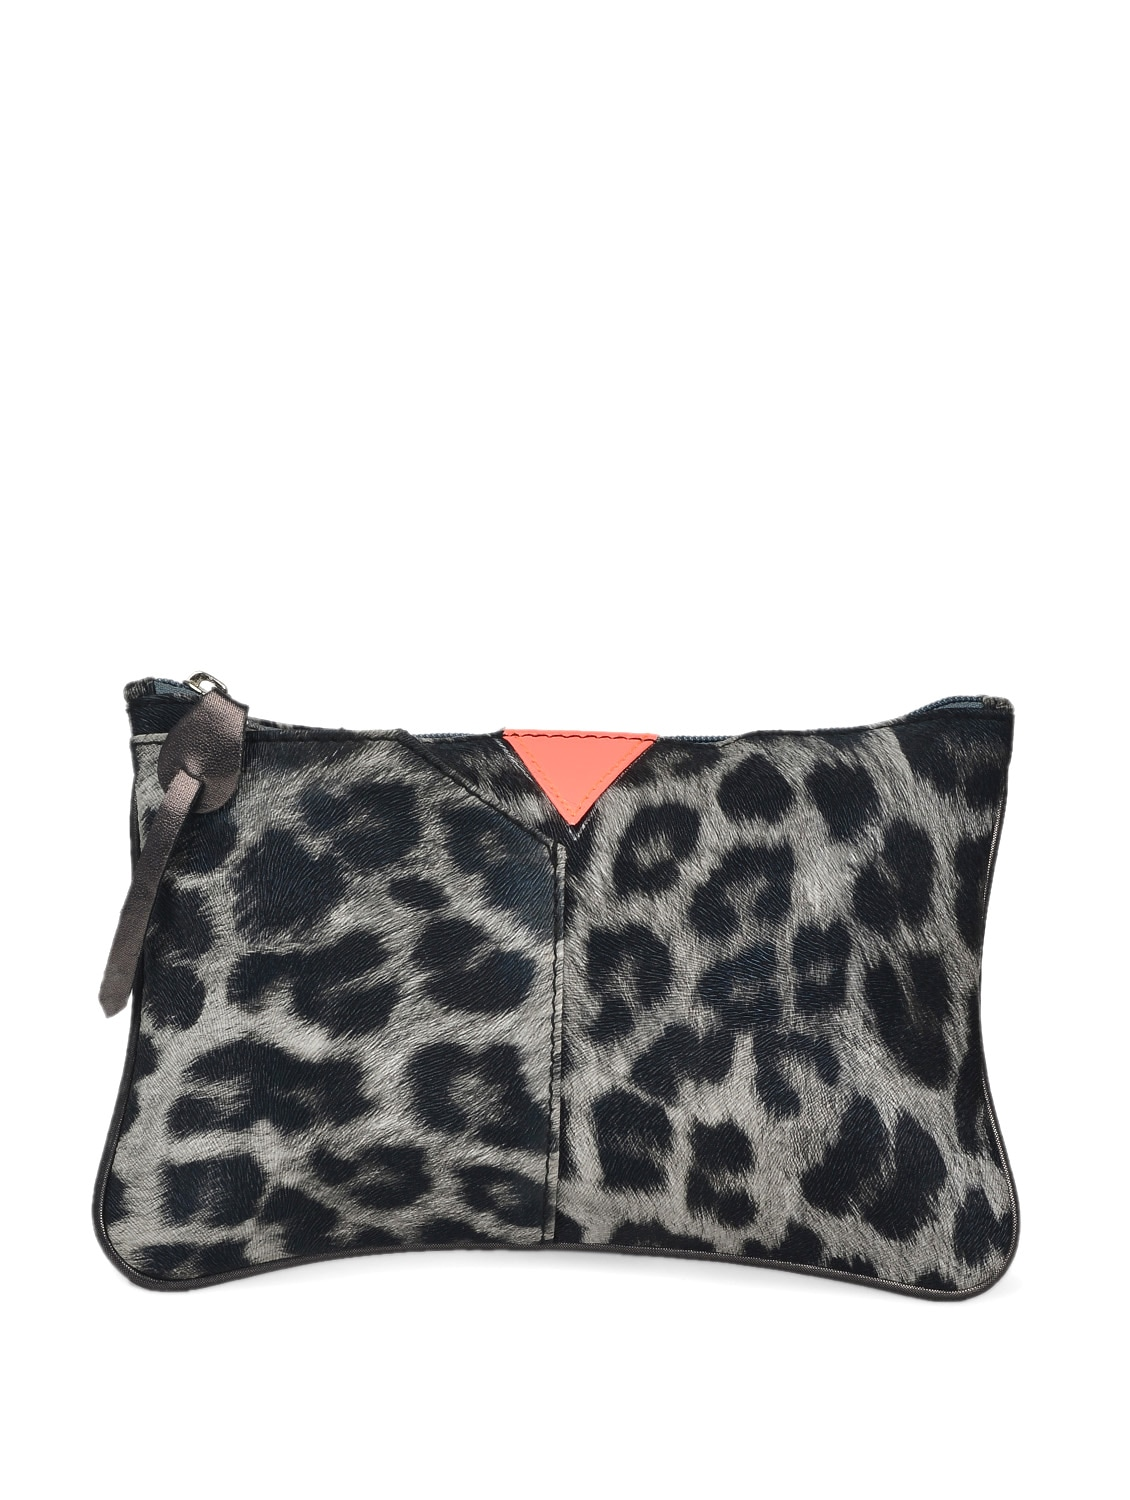 Black And Grey Leopard Print Small Pouch - HARP